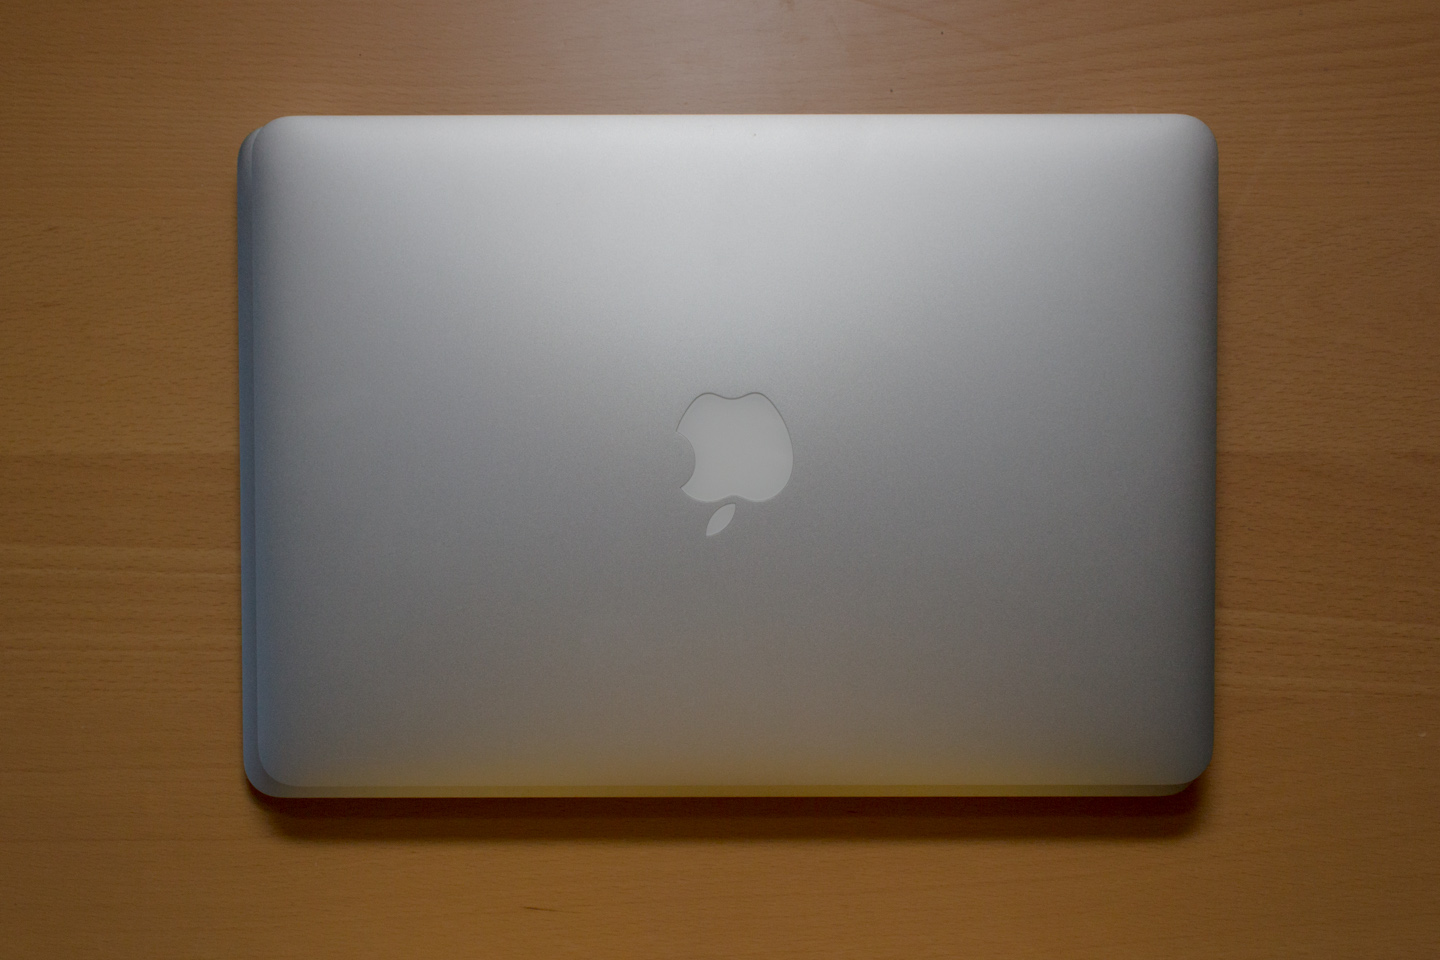 The 13-inch retina MacBook Pro, here stacked on top, is a fraction of an inch shorter in both length and width than the 13-inch MacBook Air.